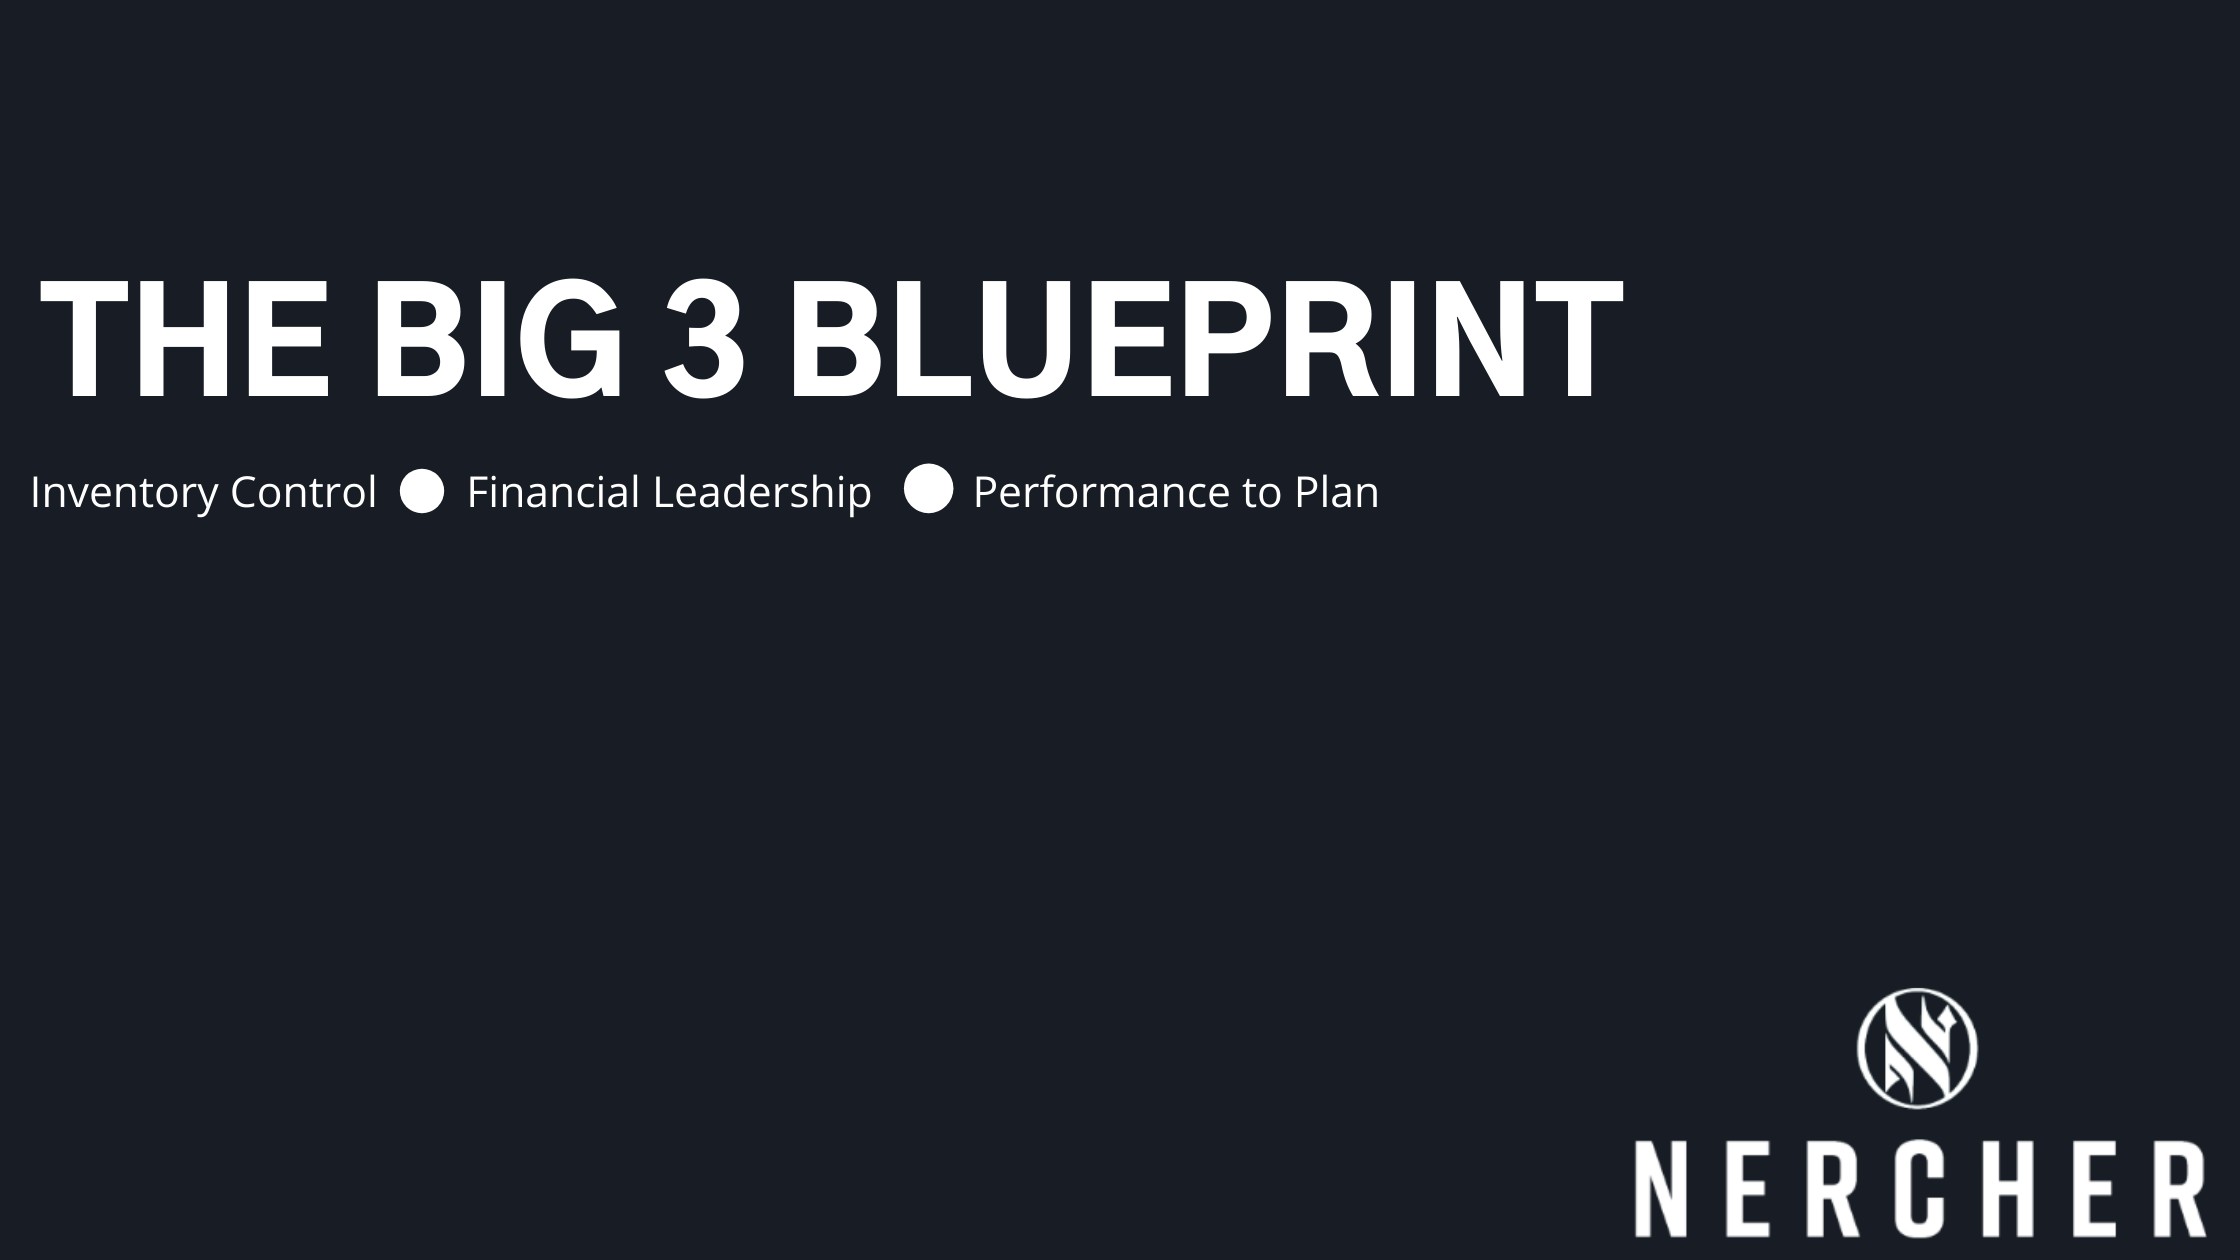 The Big 3 Blueprint: How to Set Your Small Business Up to Scale Responsibly